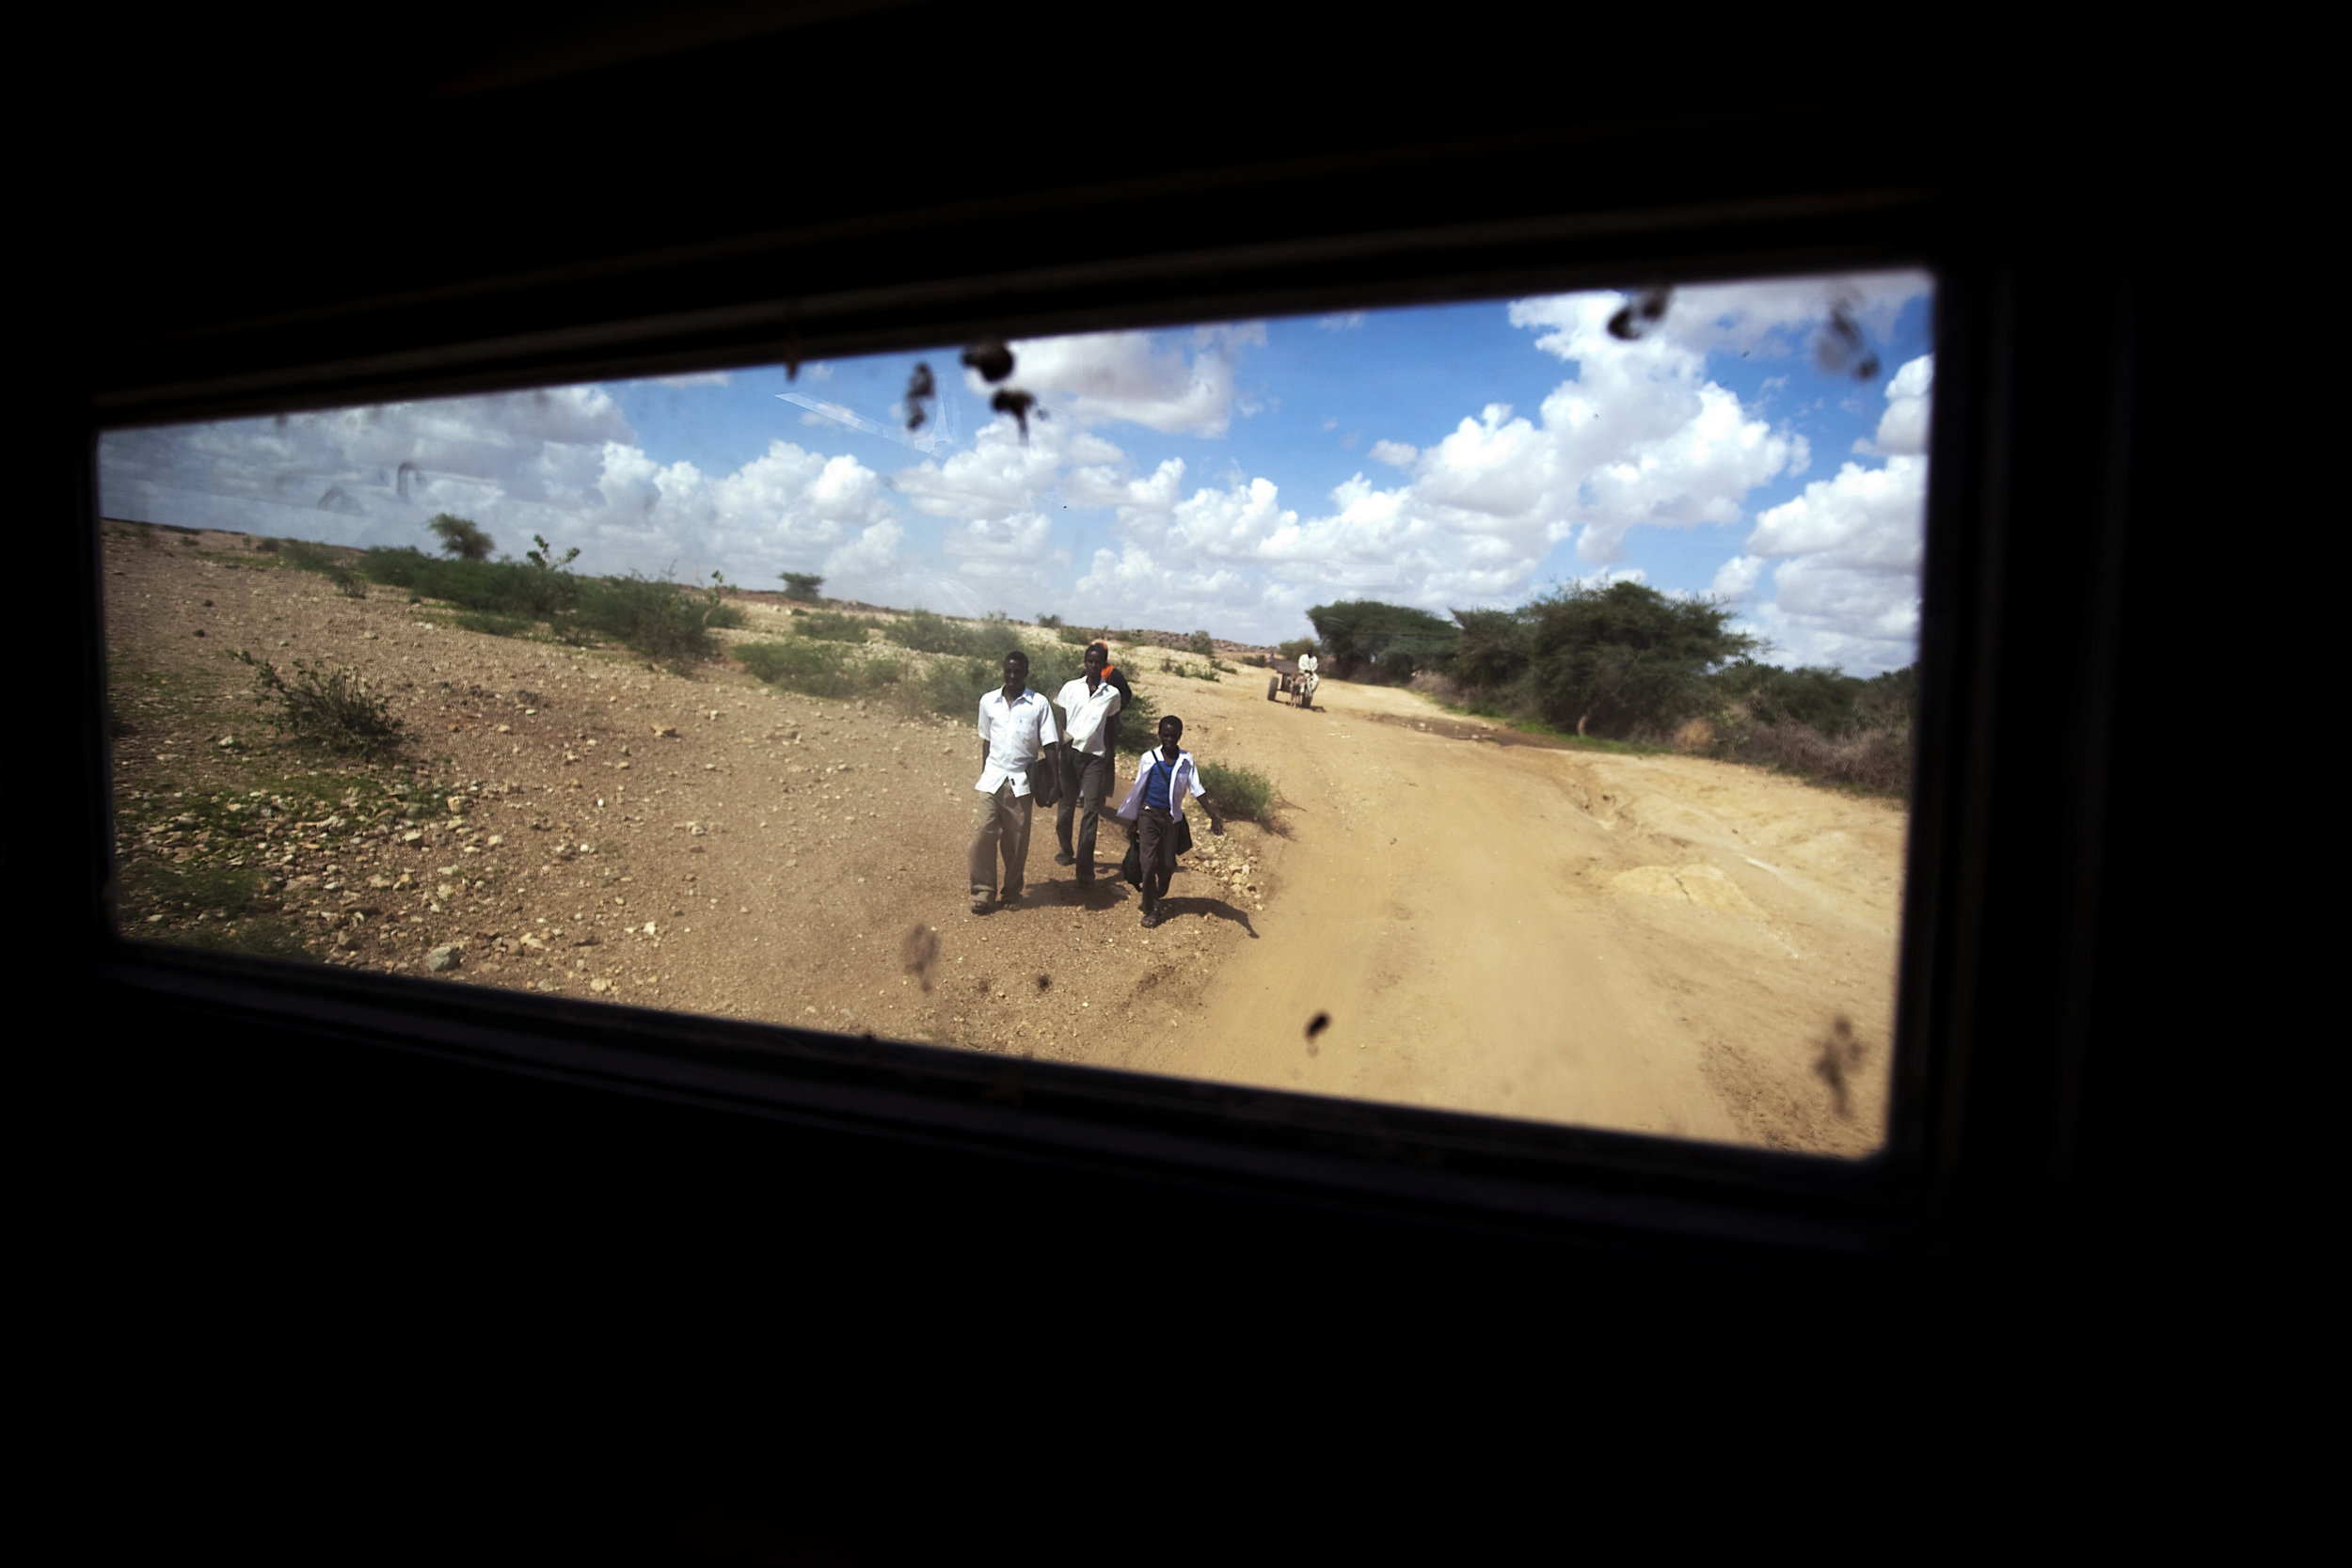 Pictured through the window of a vehicle from the African Union-United Nations Hybrid Operation in Darfur (UNAMID), displaced Sudanese travel on foot from Fata Burno to market in Kutum, North Darfur. UNAMID peacekeepers frequently patrol the road to shield the travellers from threats by Janjaweed militiamen. 02 August 2010 I North Darfur, Sudan  © UN Photo/Albert González Farran